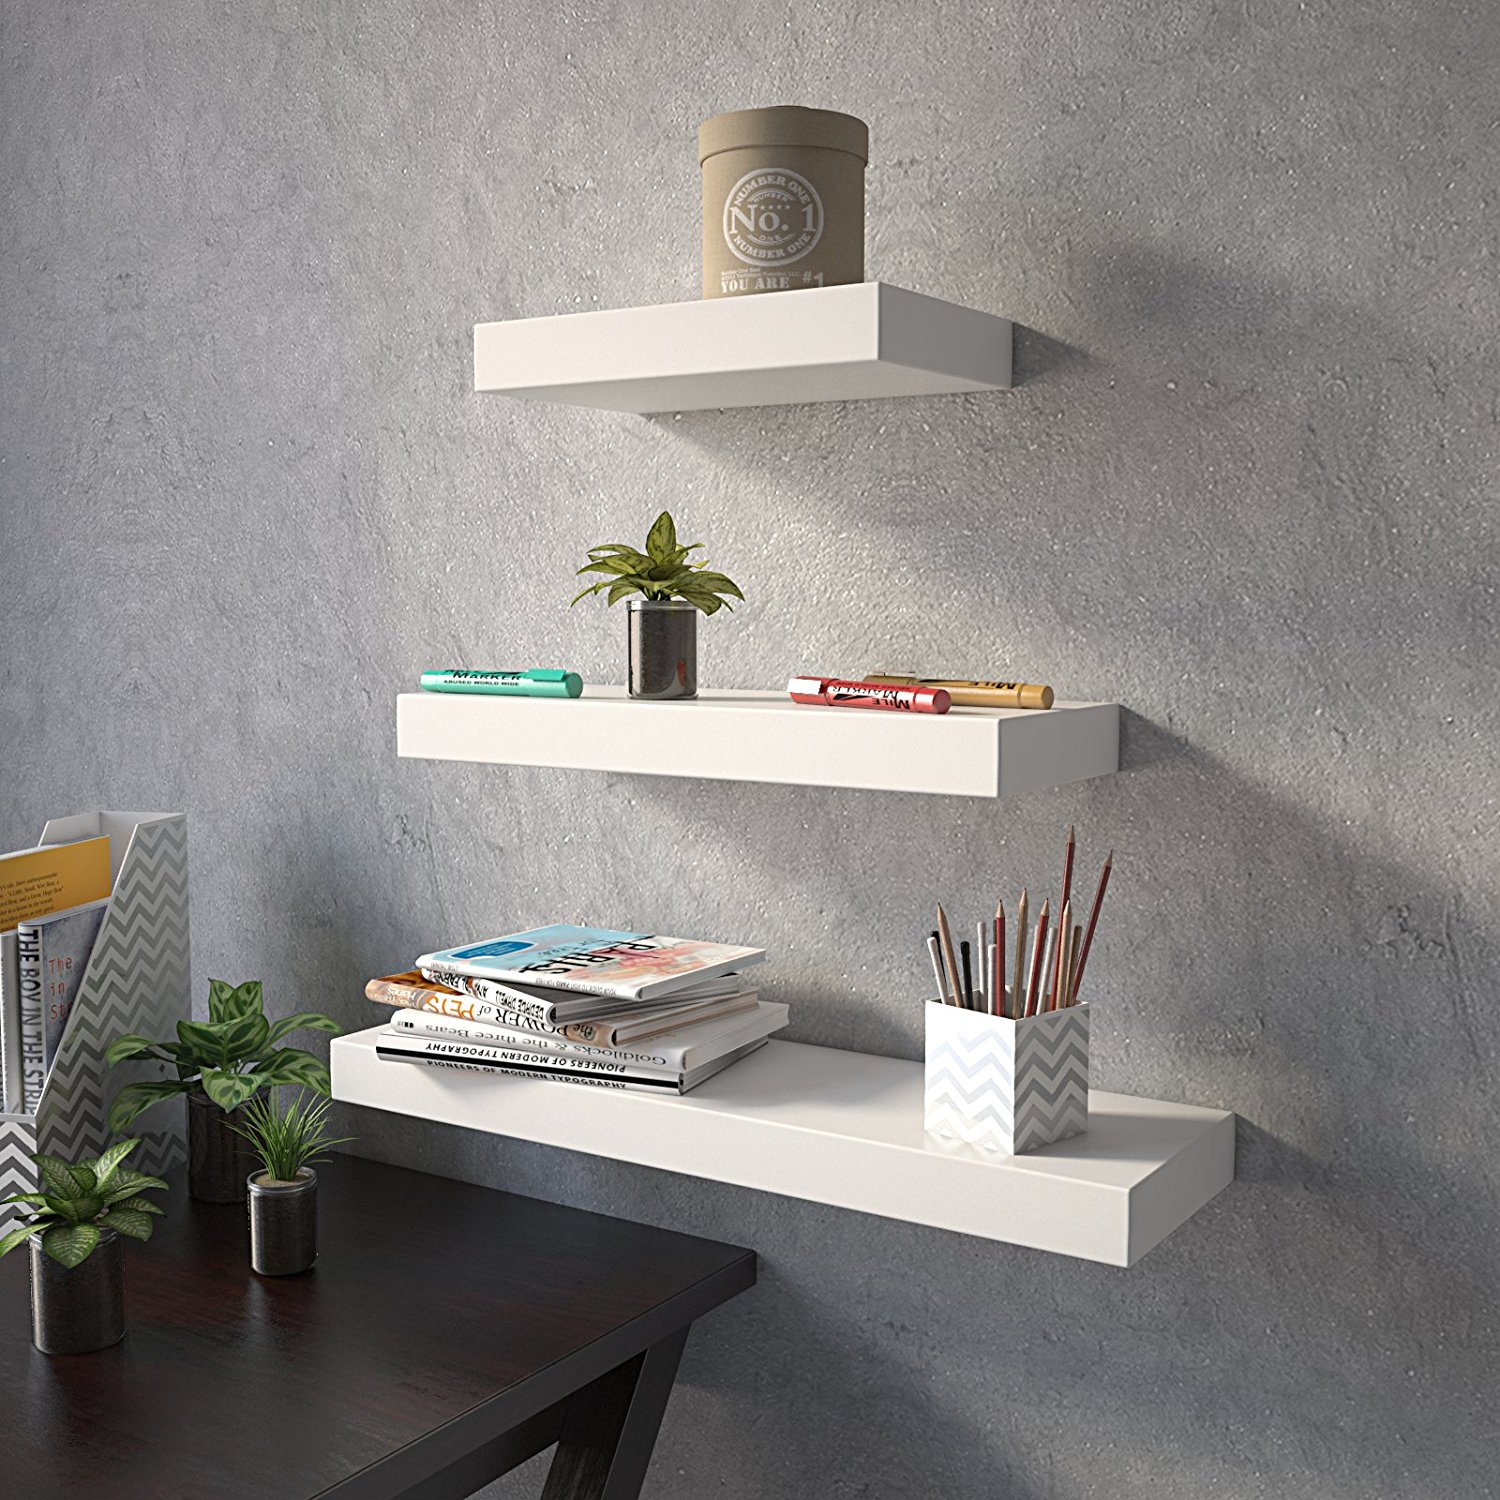 Decorative wall shelves in white for home decor